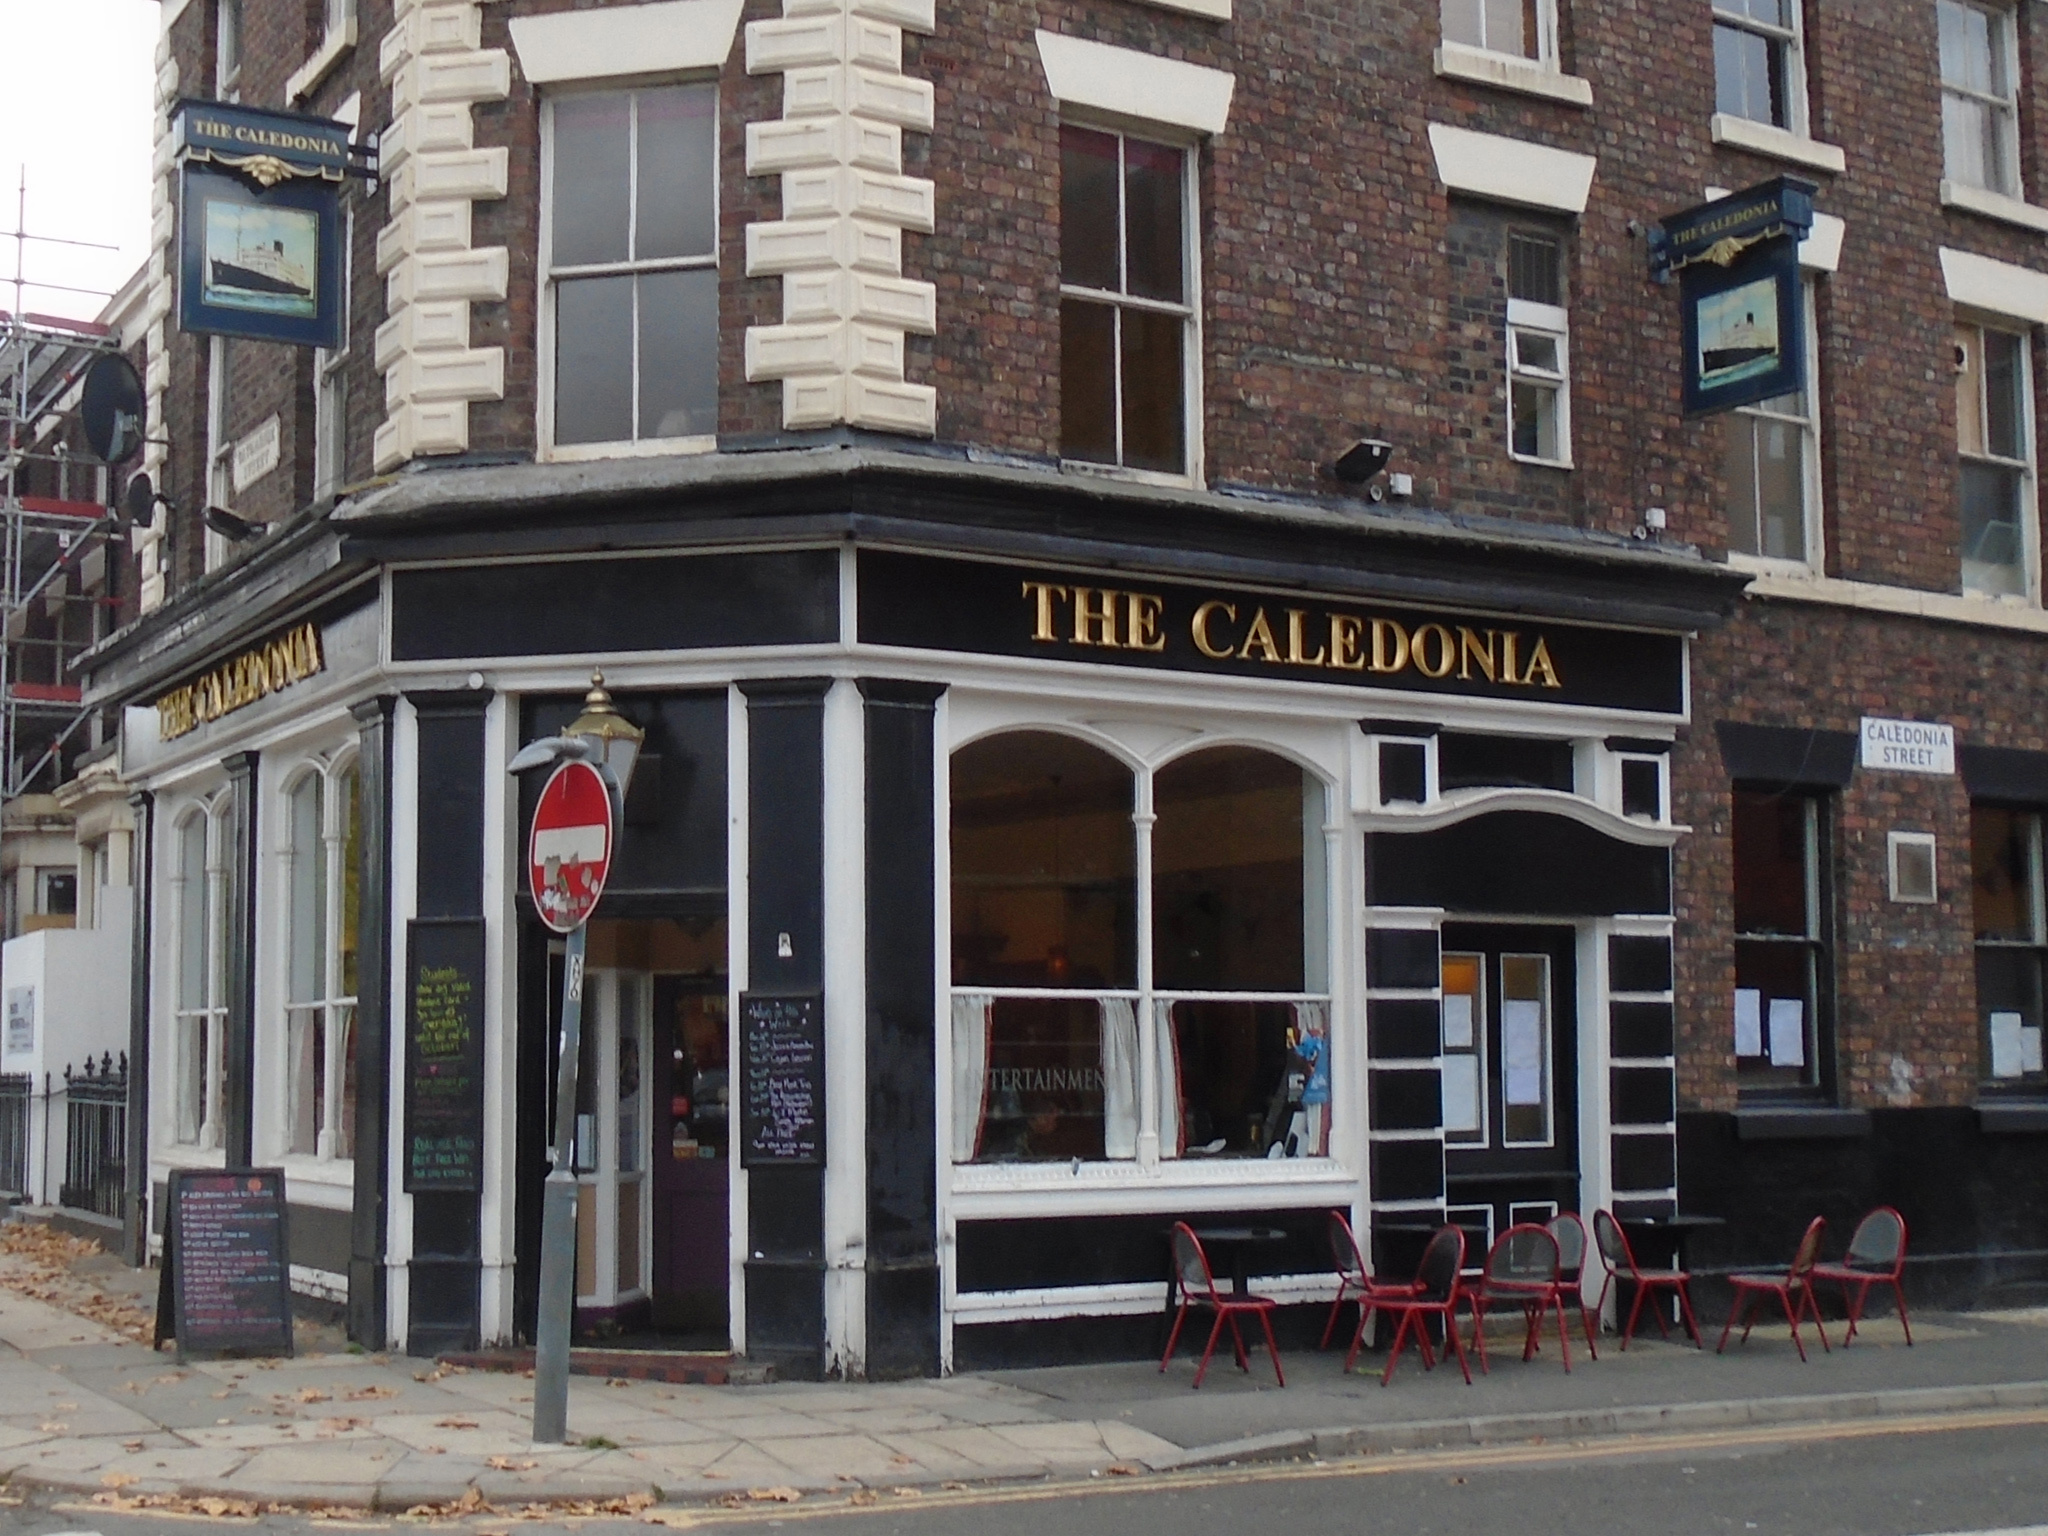 The exterior of the Caledonia in Liverpool